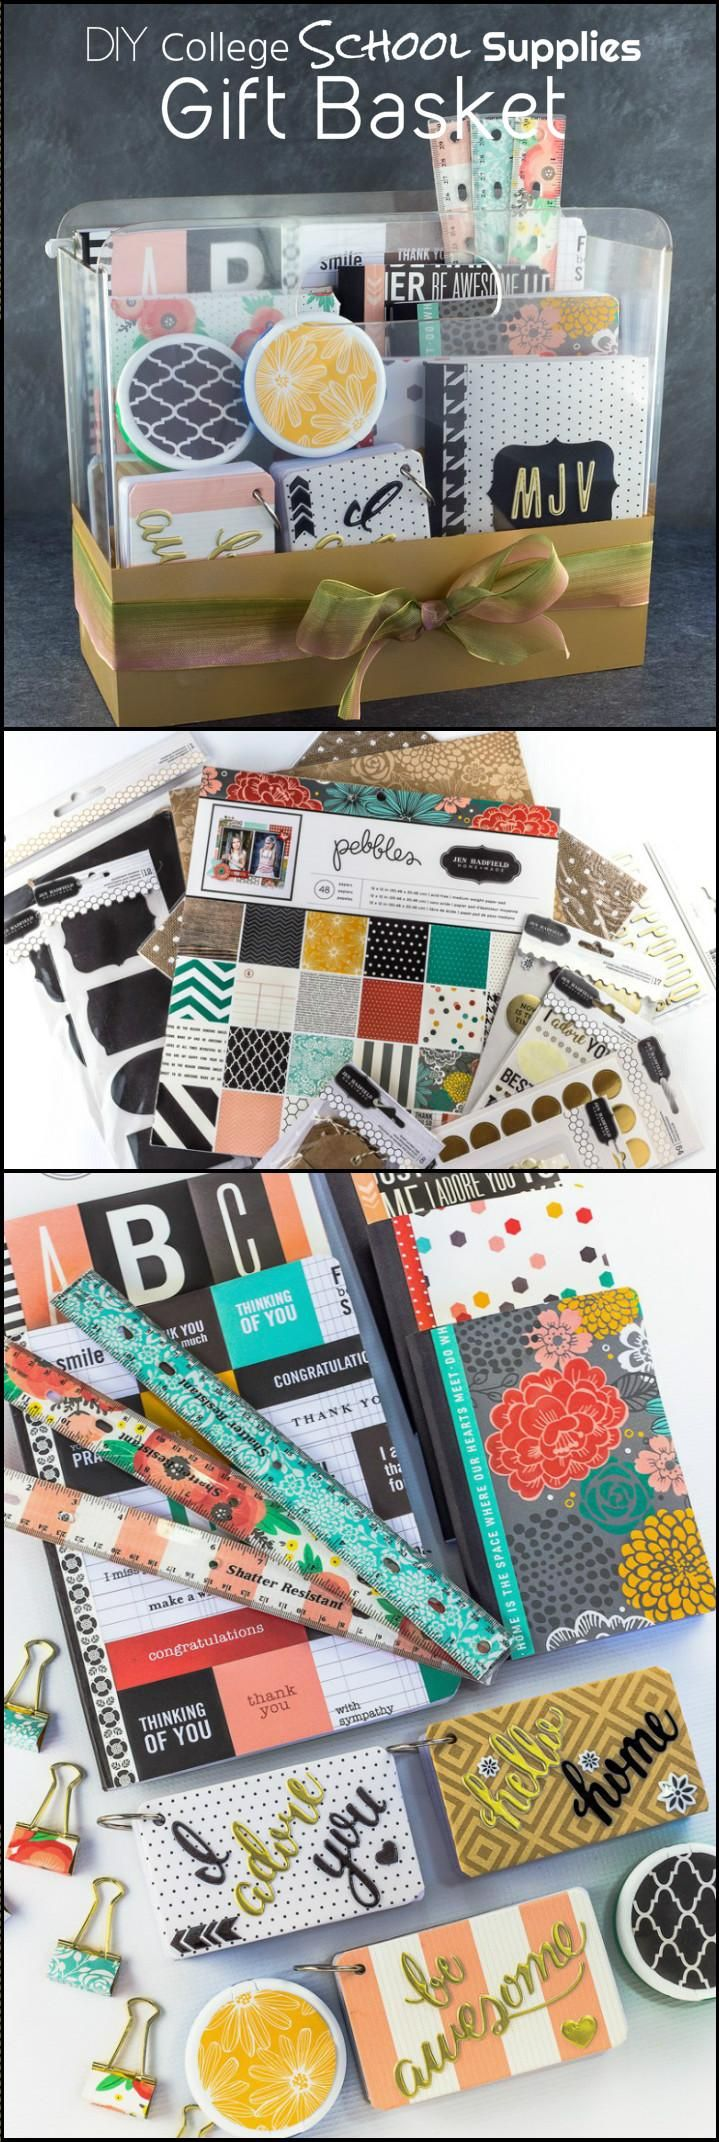 Easy College School Supplies Gift Basket - 70+ Inexpensive DIY Gift Basket Ideas - DIY Gifts - Page 5 of 14 - DIY & Crafts